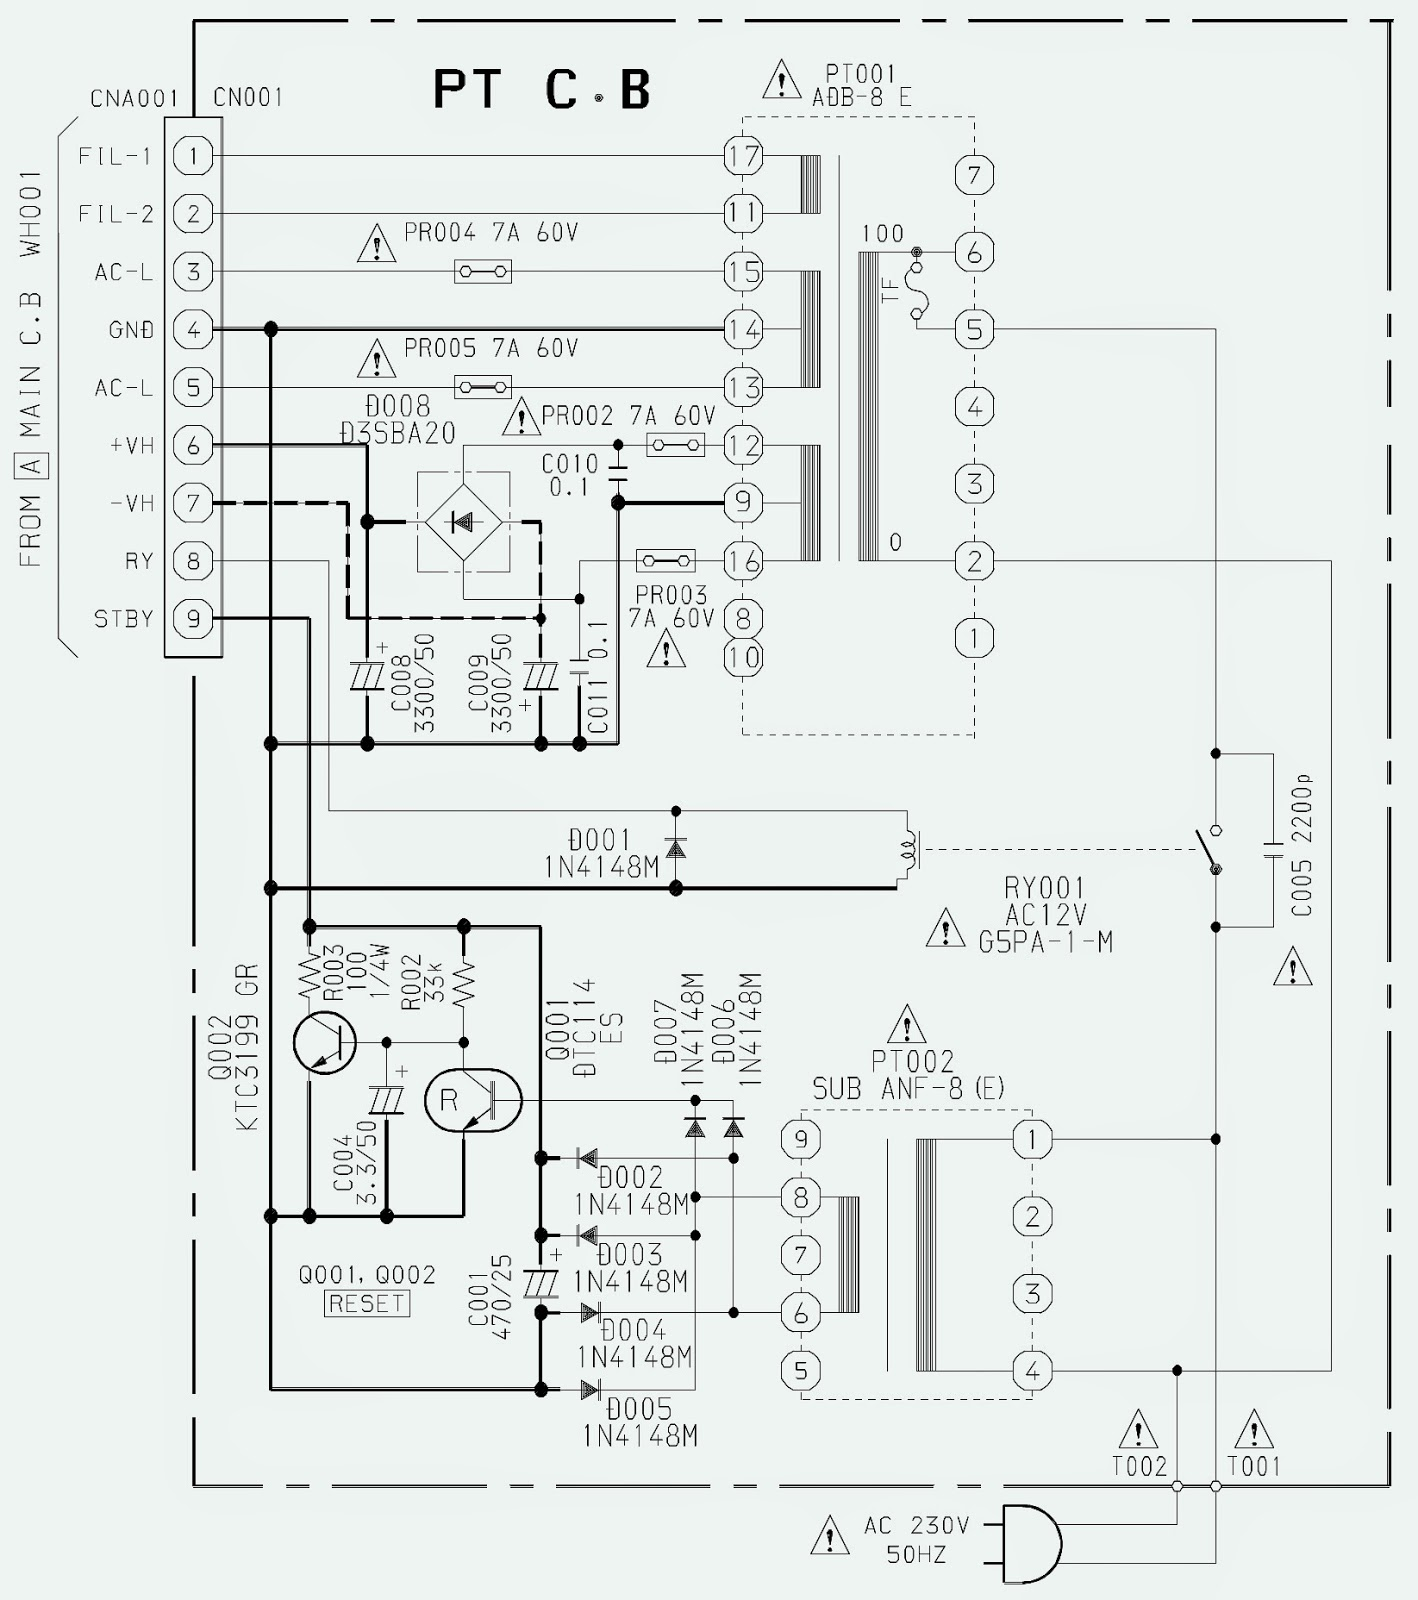 4 power.bmp aiwa xr hg5md md cd stereo system _ circuit diagram electro help aiwa cdc-x144 wiring diagram at bayanpartner.co